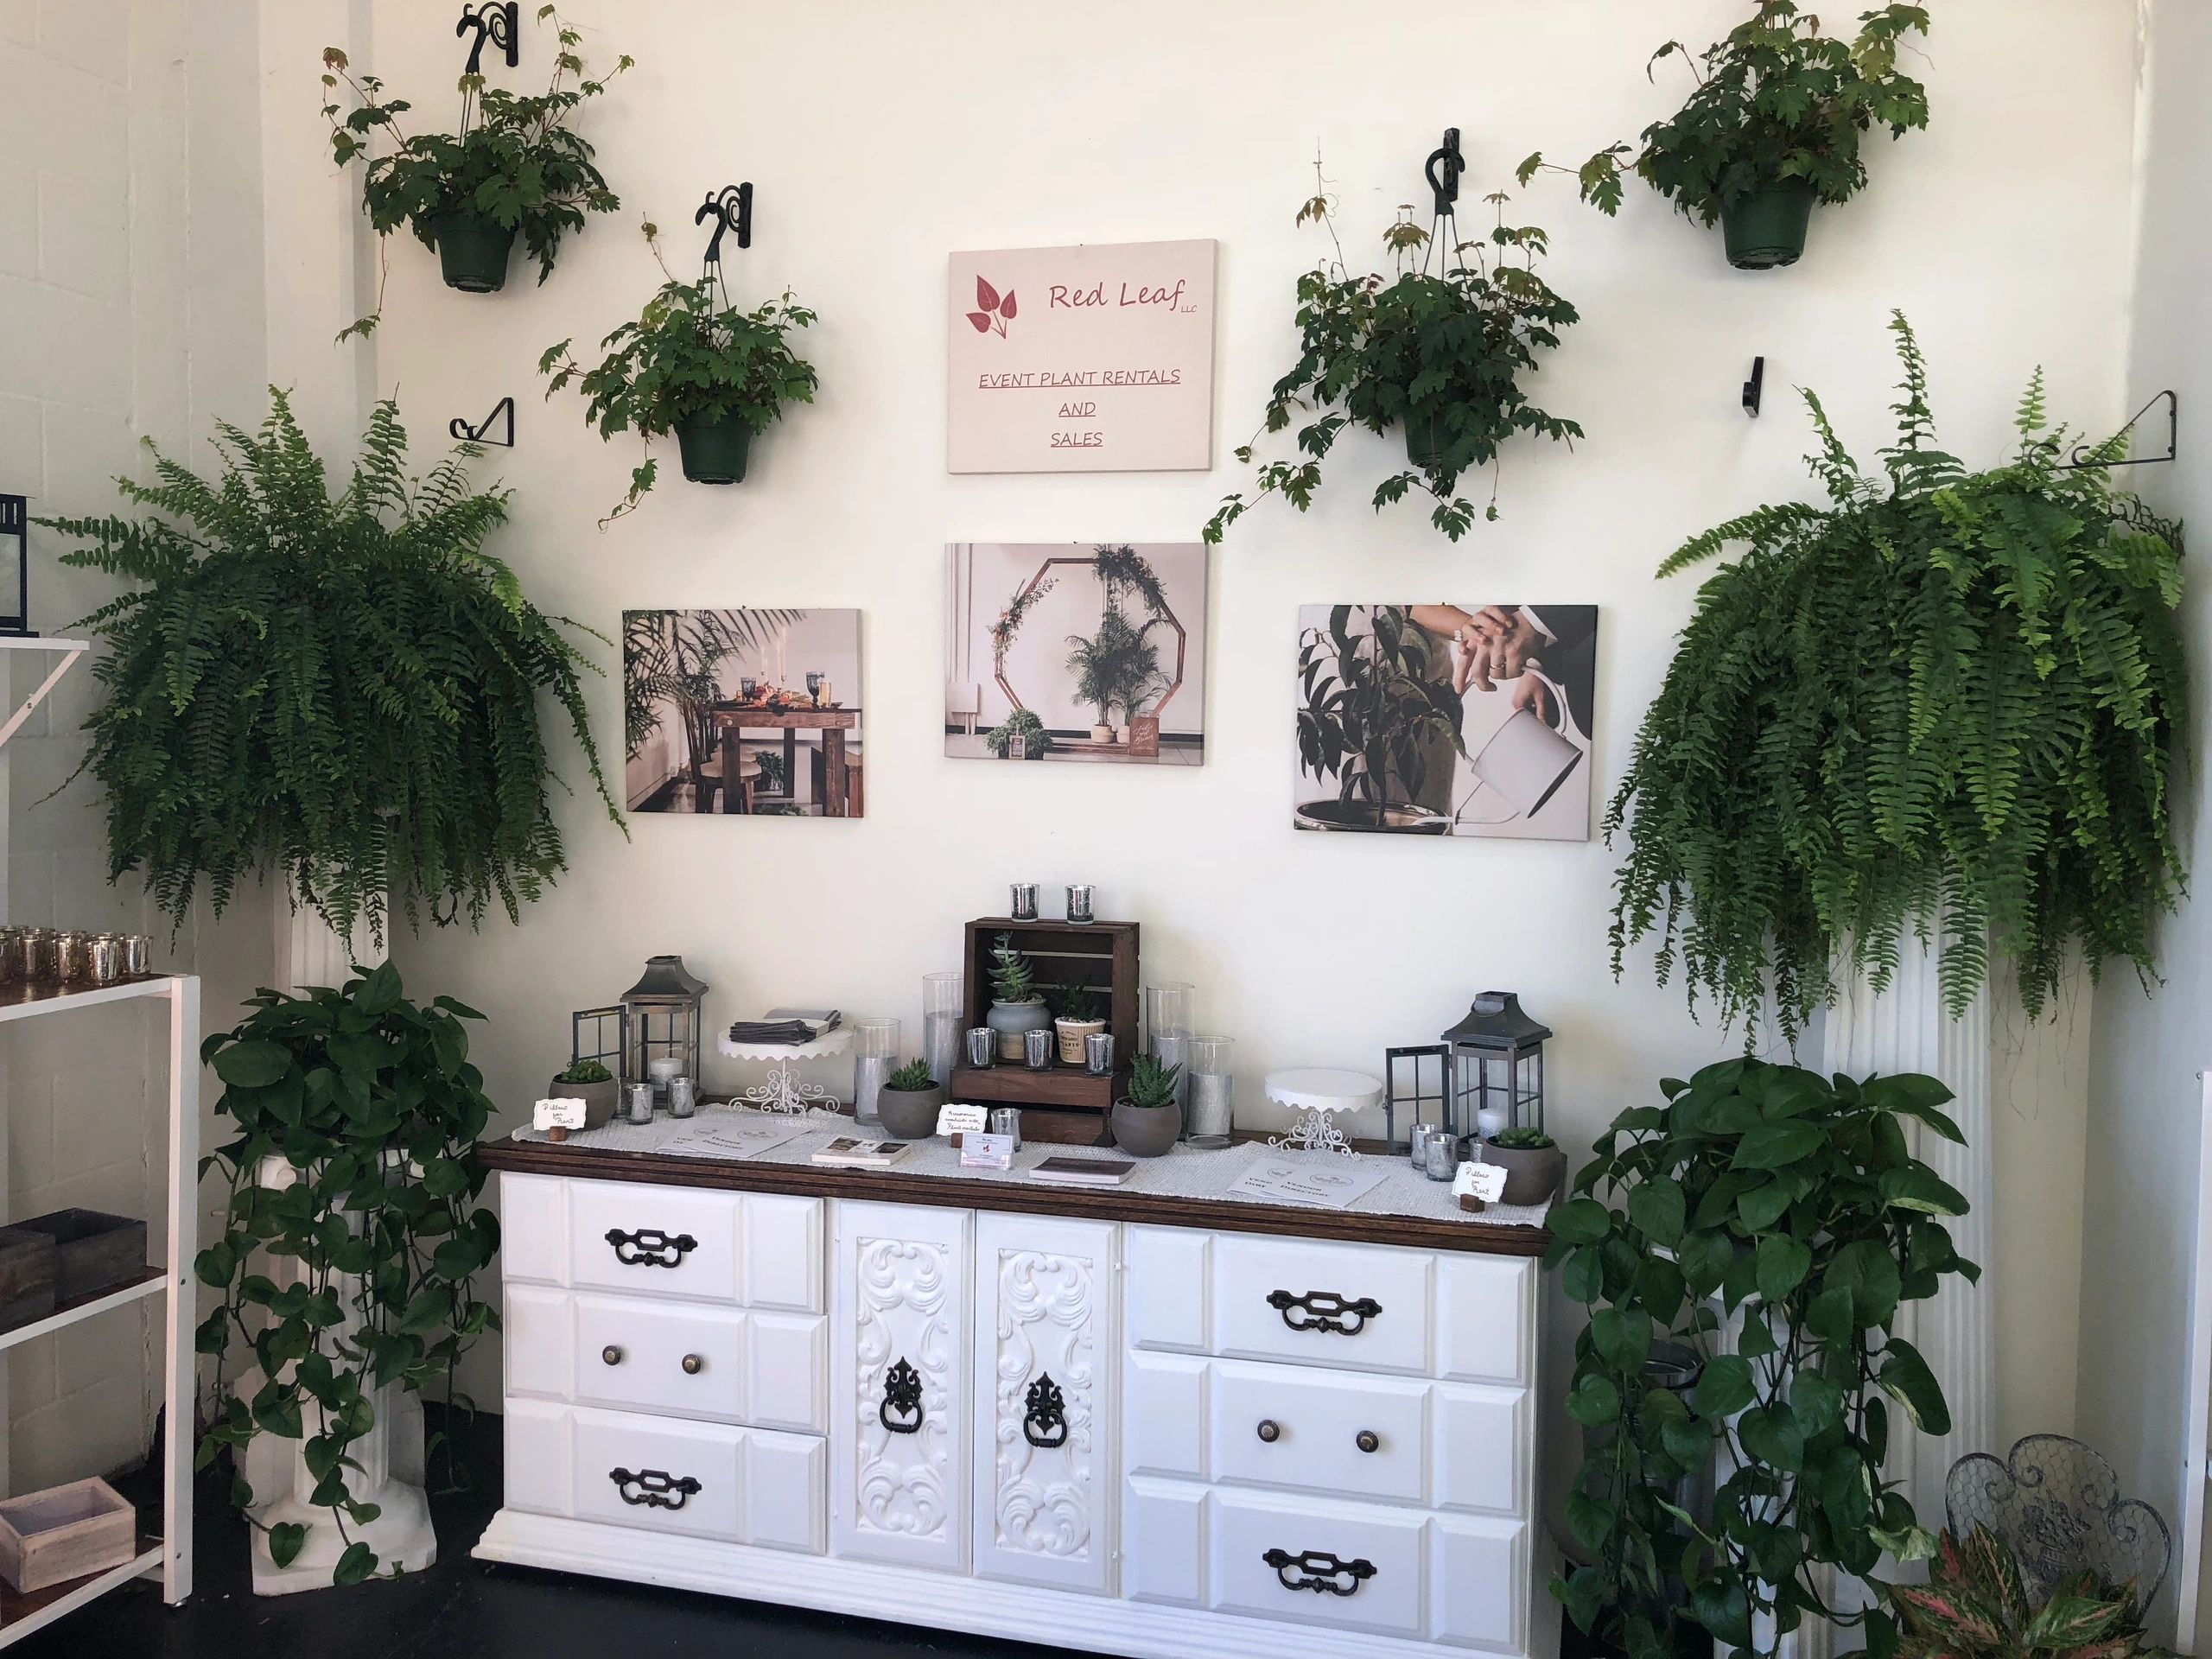 Plant rental display